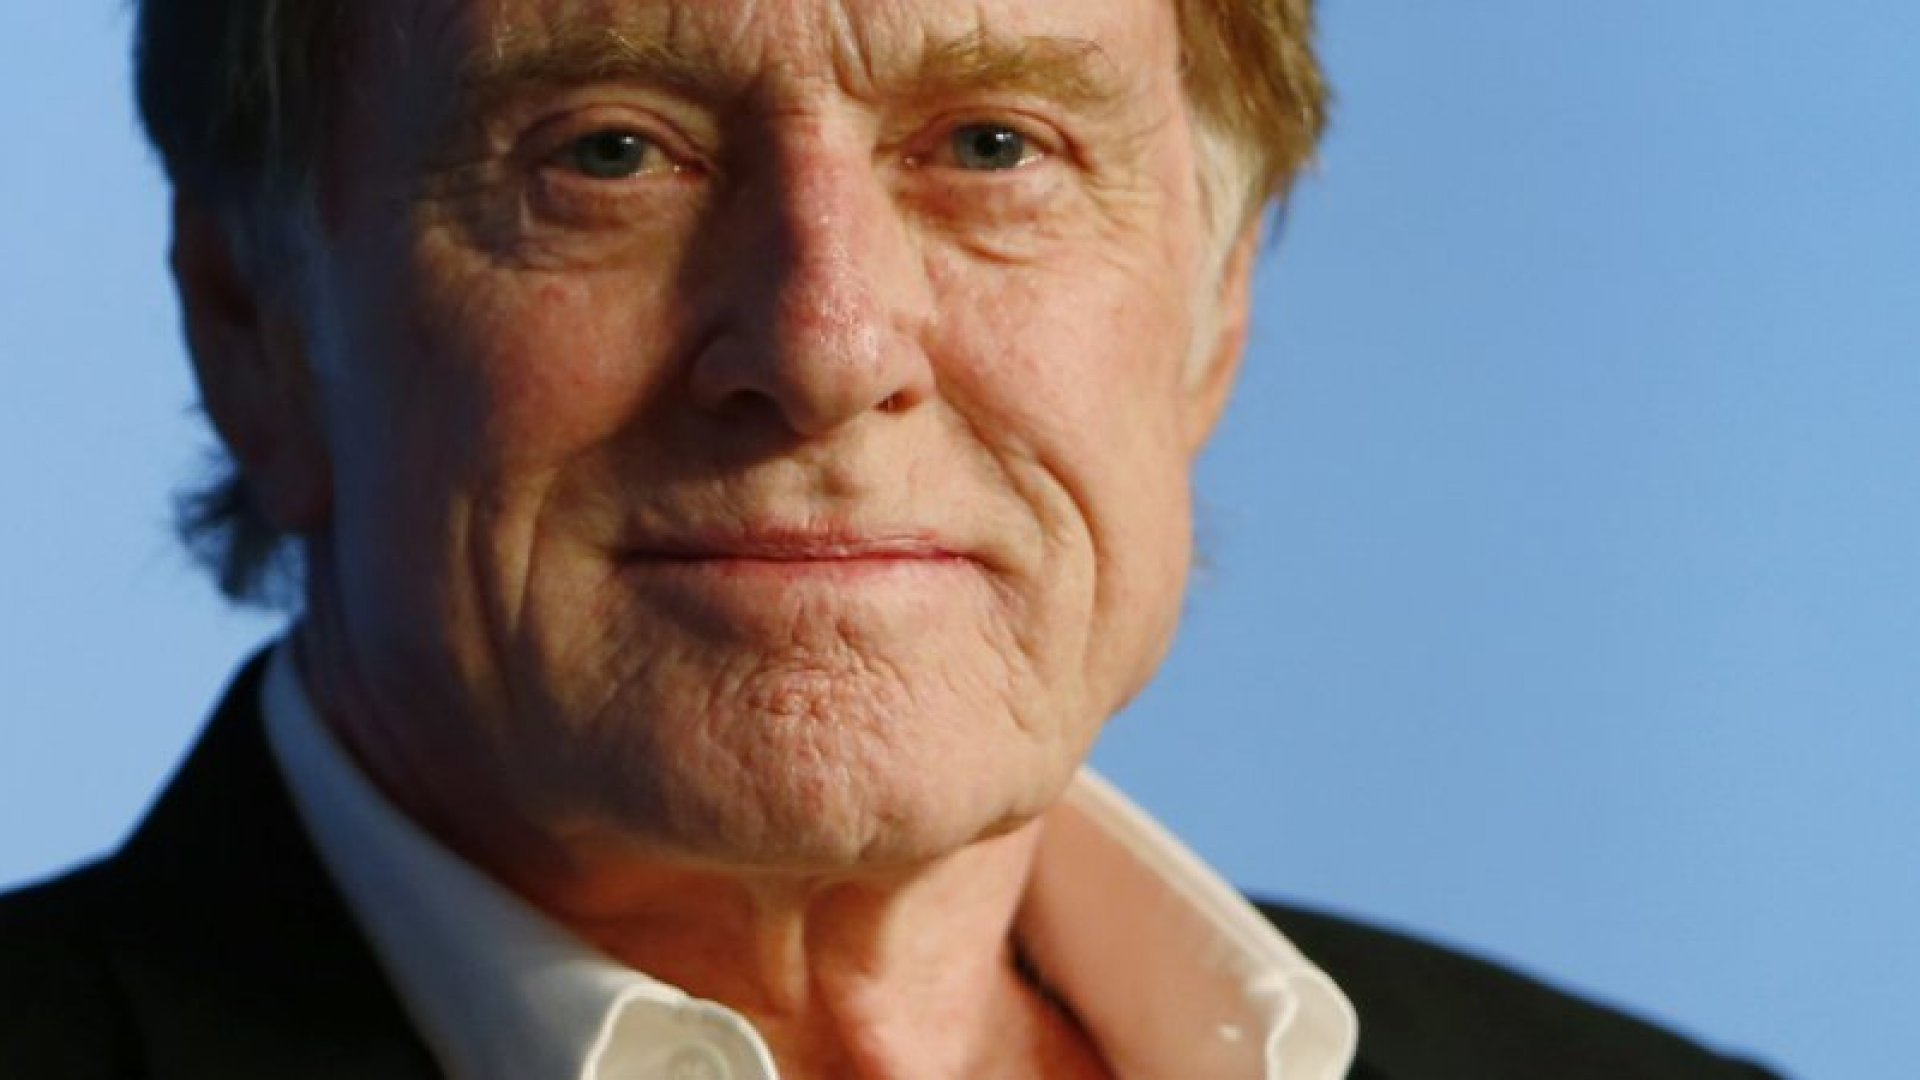 Robert Redford on Risks, Sundance Startup Doubts, and Picking the Wrong Investors